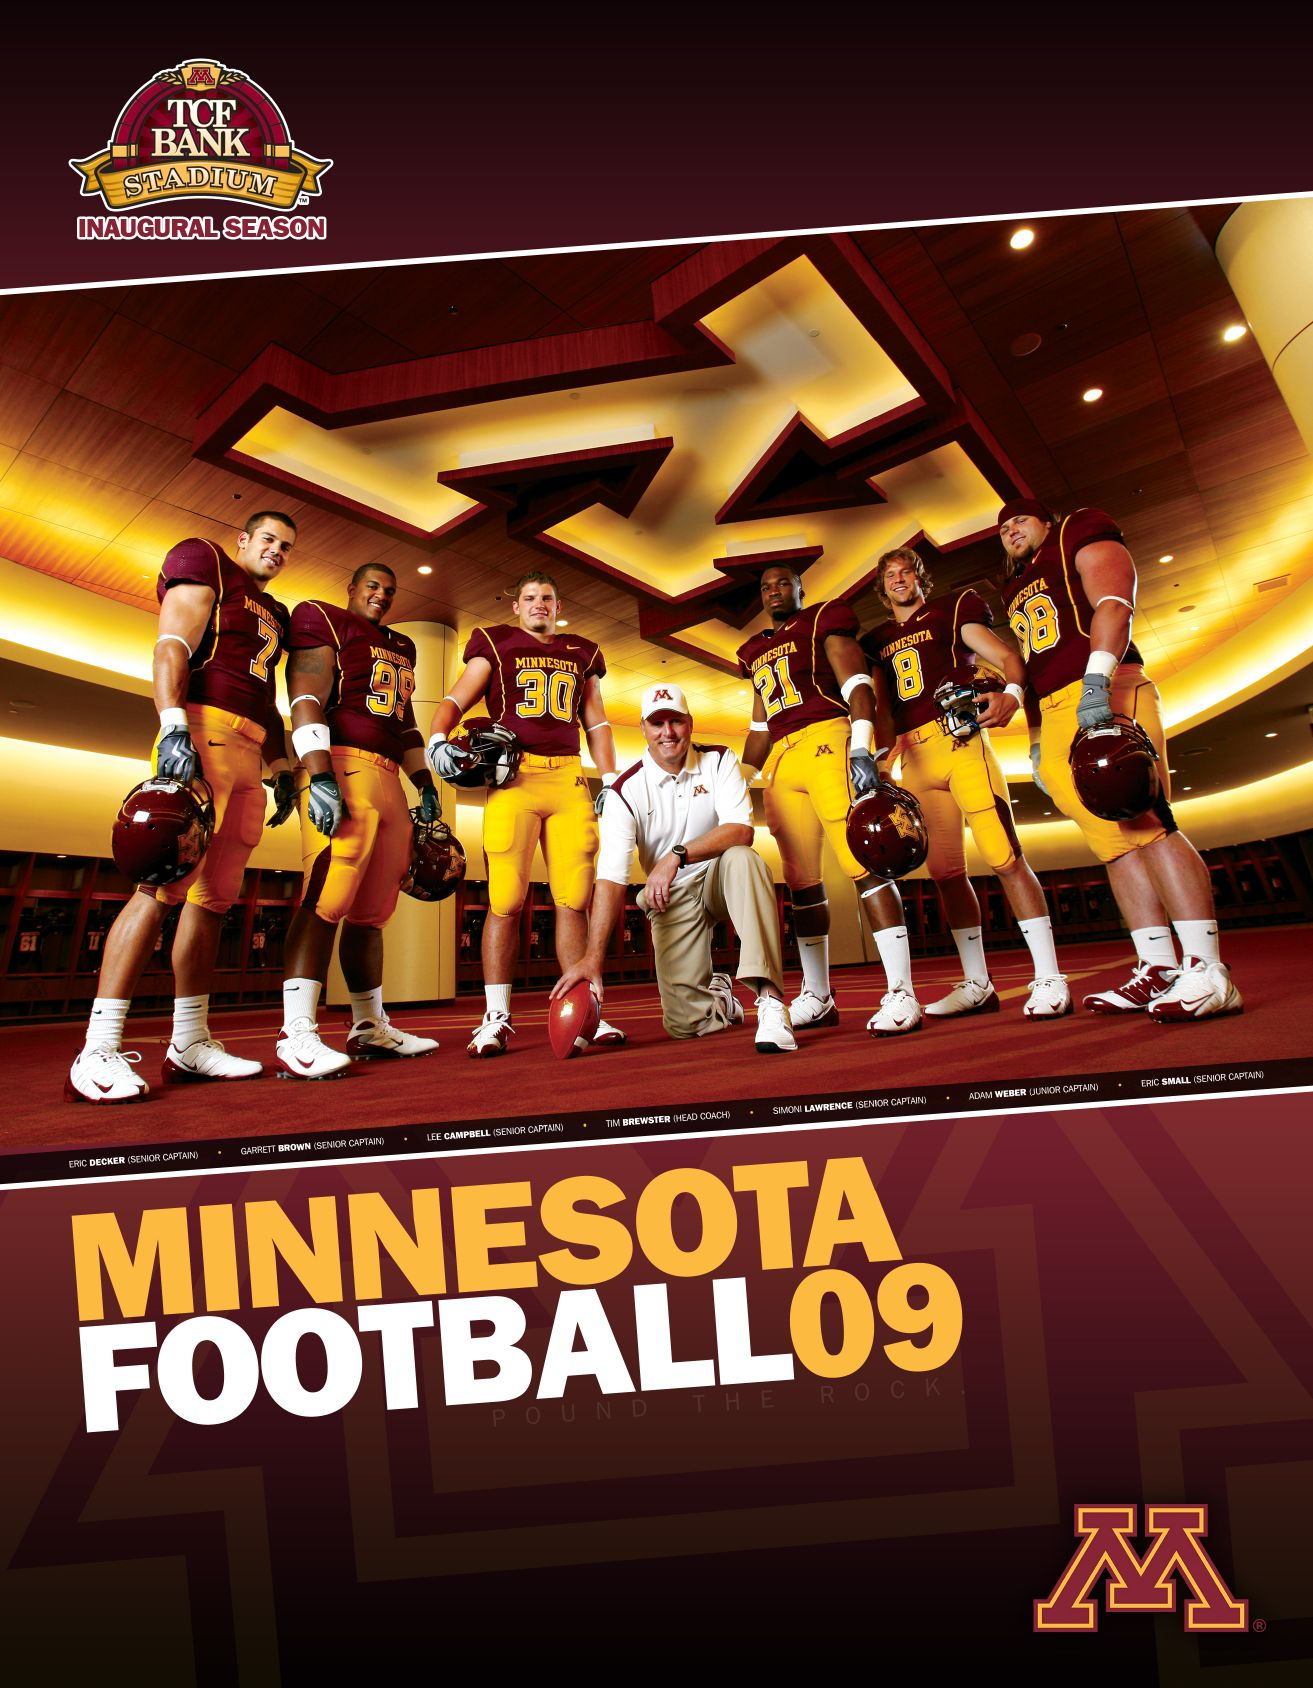 2009 Minnesota Football Recruiting Guide by University of Minnesota  Athletics - issuu 98297a682